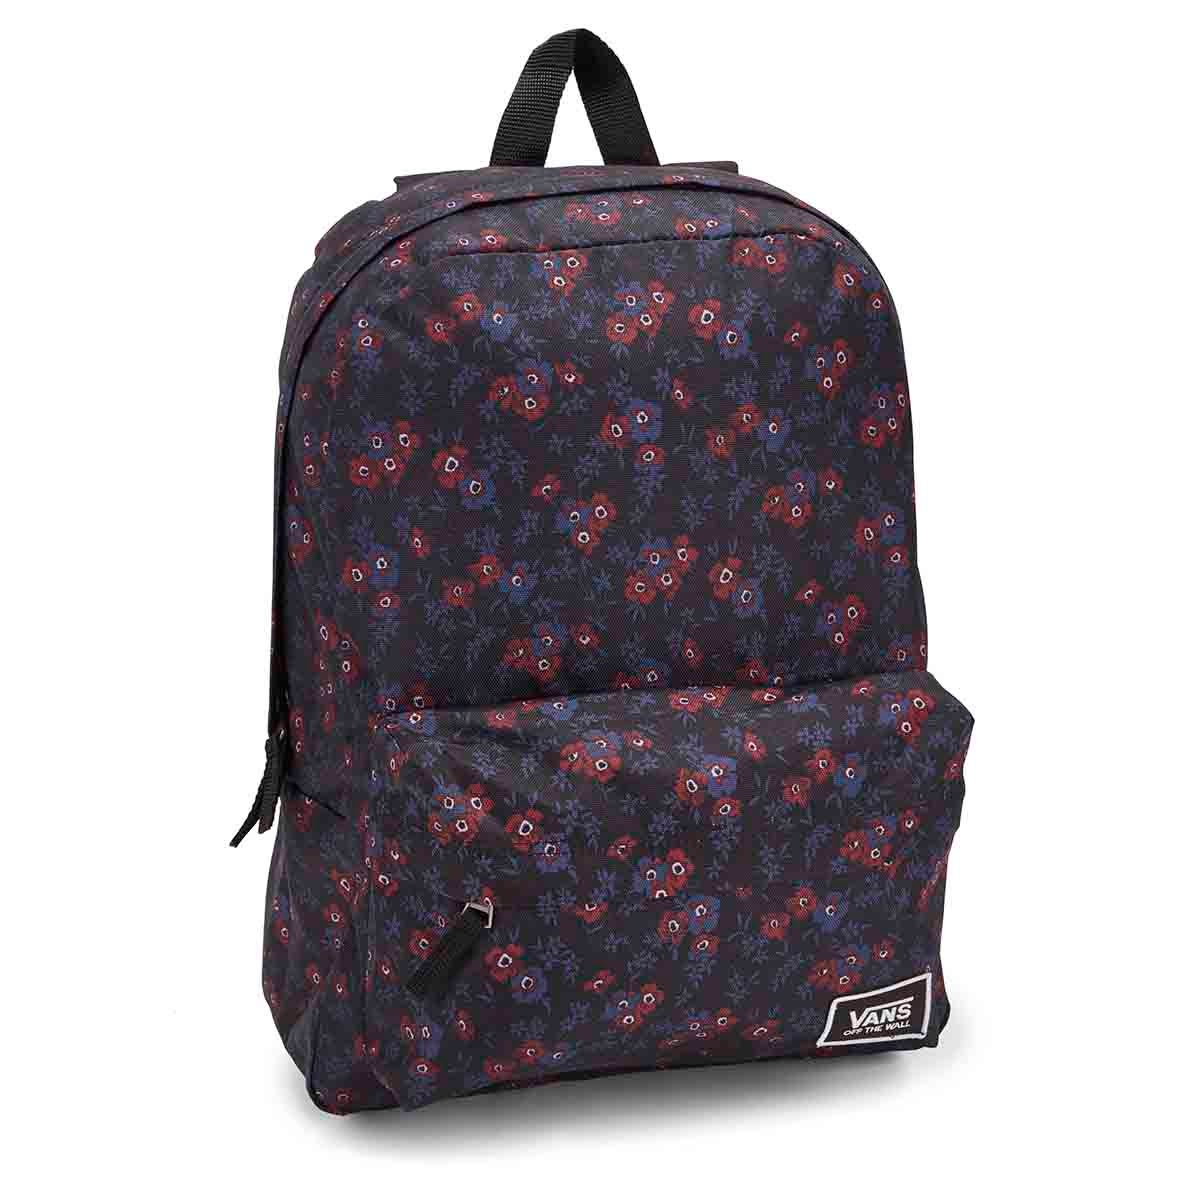 Unisex REALM CLASSIC black blooms backpack